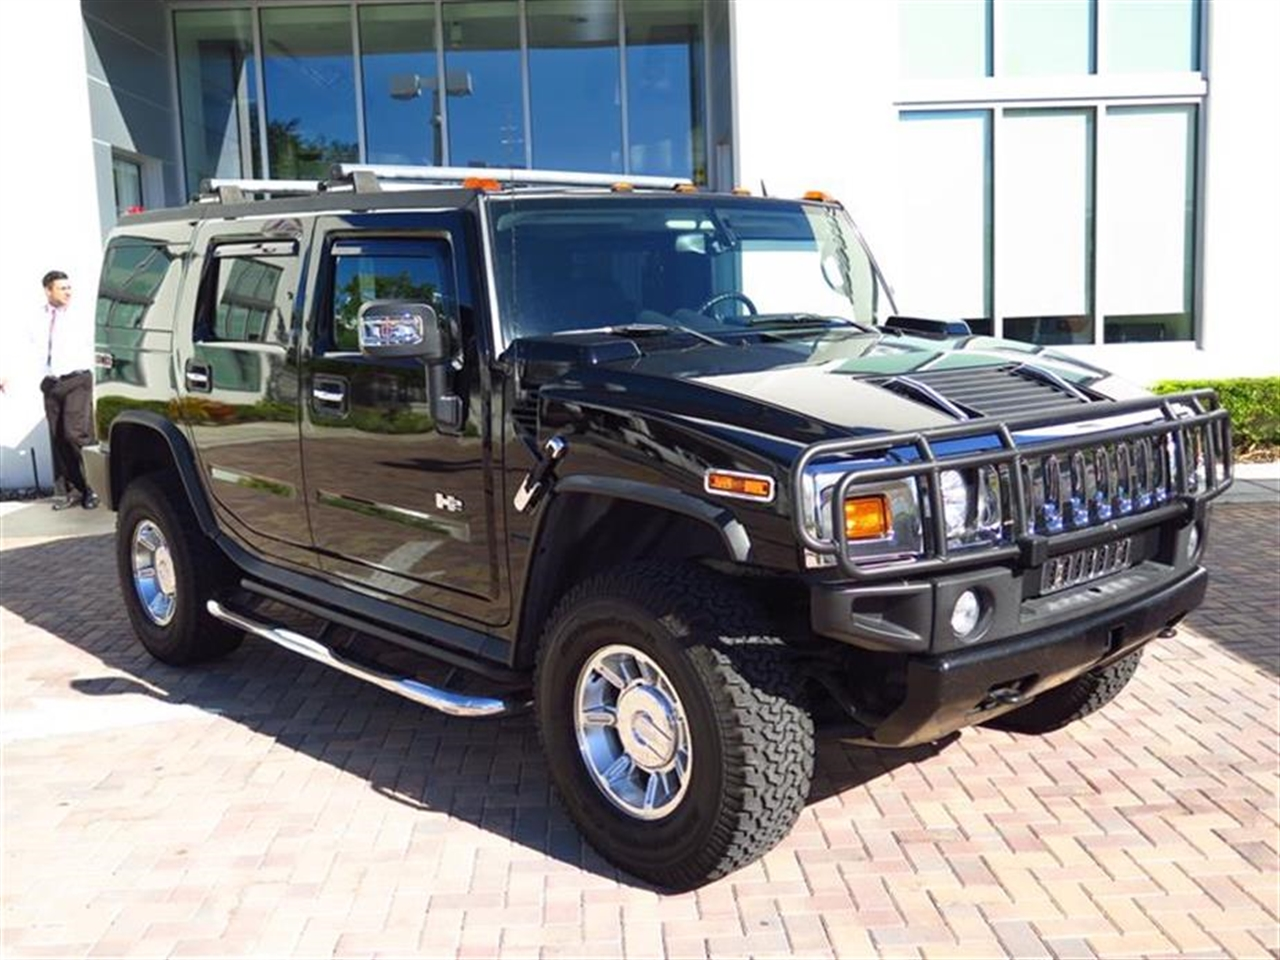 2007 HUMMER H2 4WD 4dr SUV 64335 miles Air conditioning dual-zone automatic climate control with